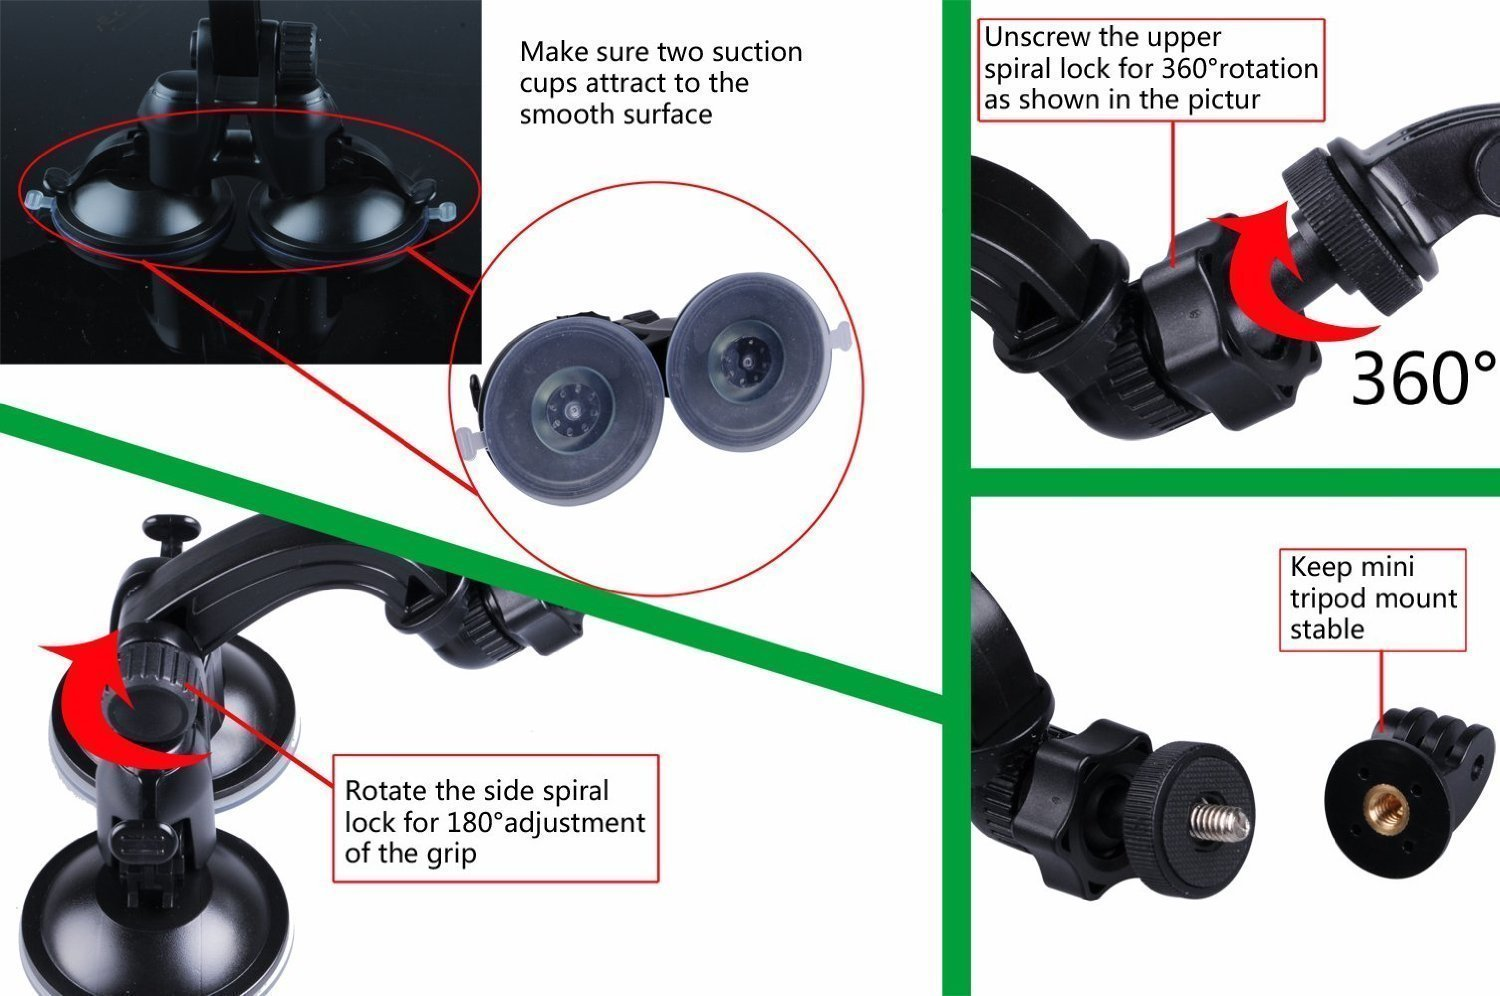 Smatree Double Suction Cup Mount With Greater Telkomsel 17 Gopro Hero Session Power For 7 6 5 4 3 2 1 Compact Cameras Camera Photo